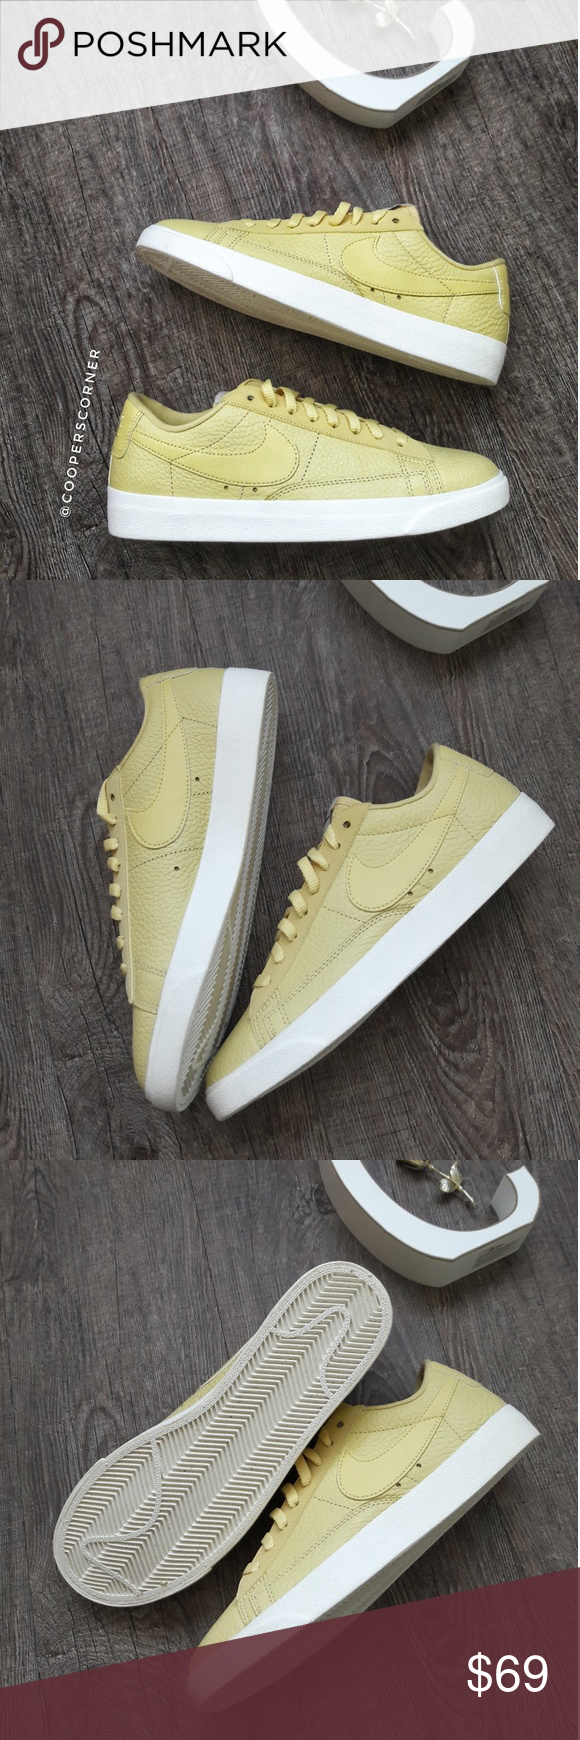 new style 38cbc 0c4bb NEW Nike SB Blazer Low (Rare) New in box, no lid. Price is ...